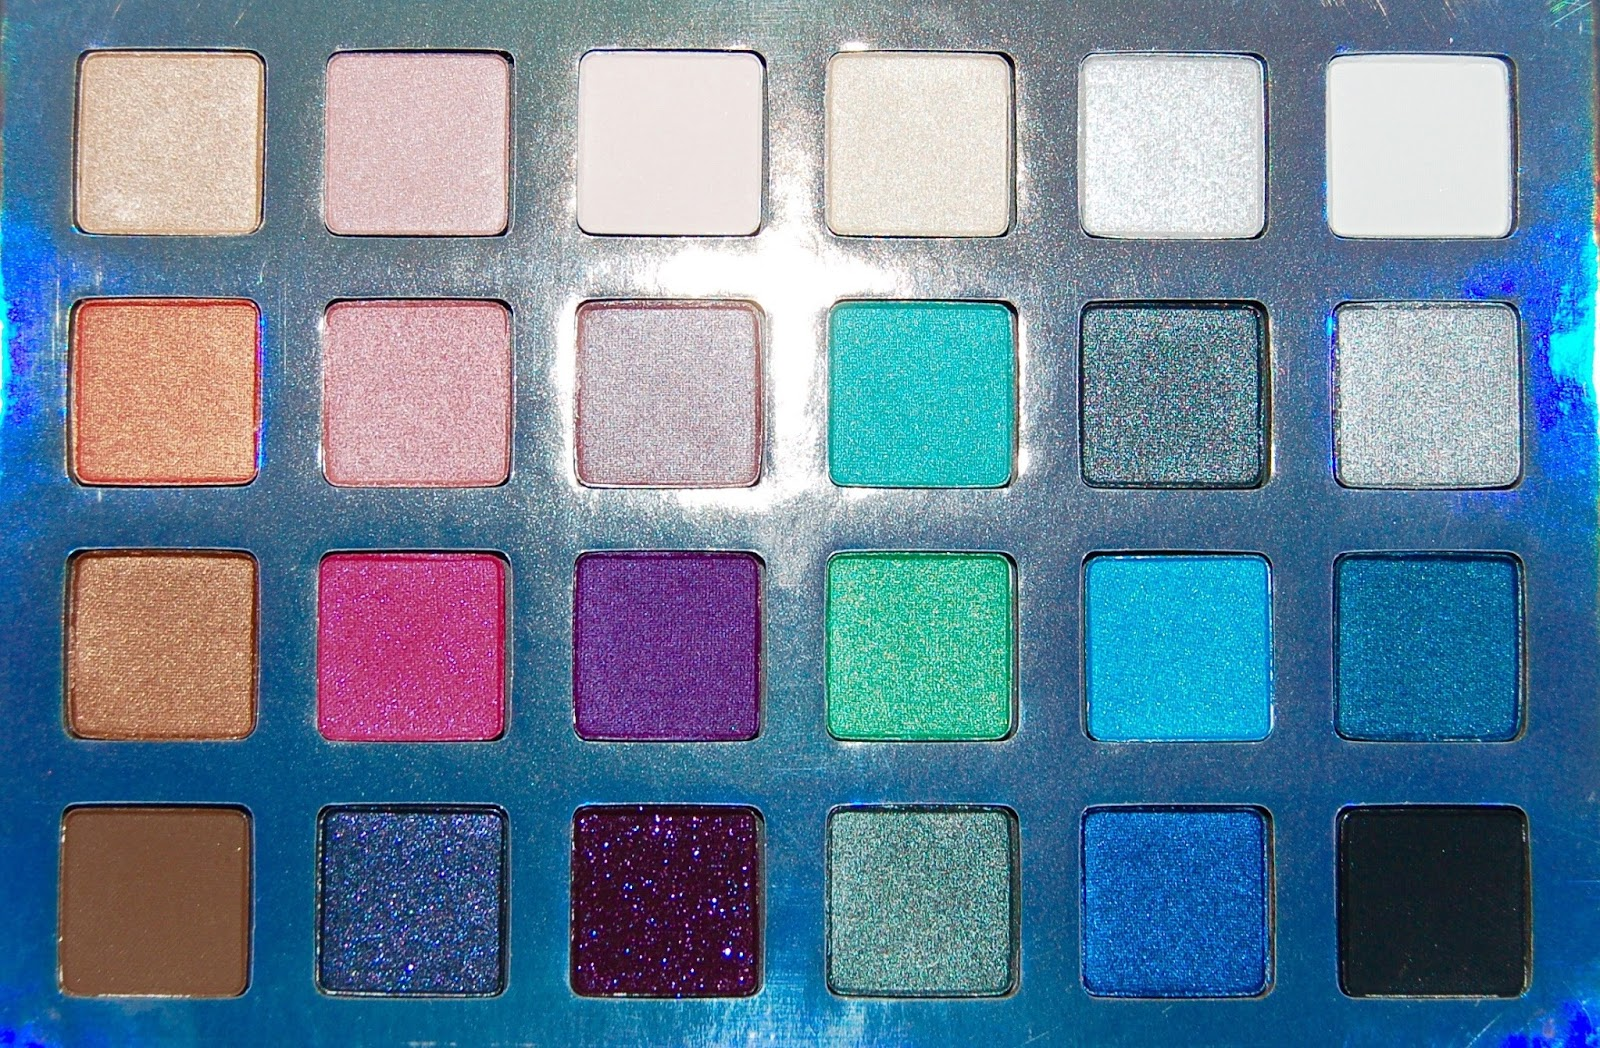 Sephora Jem and the Holograms Truly Outrageous Eye Shadow Palette